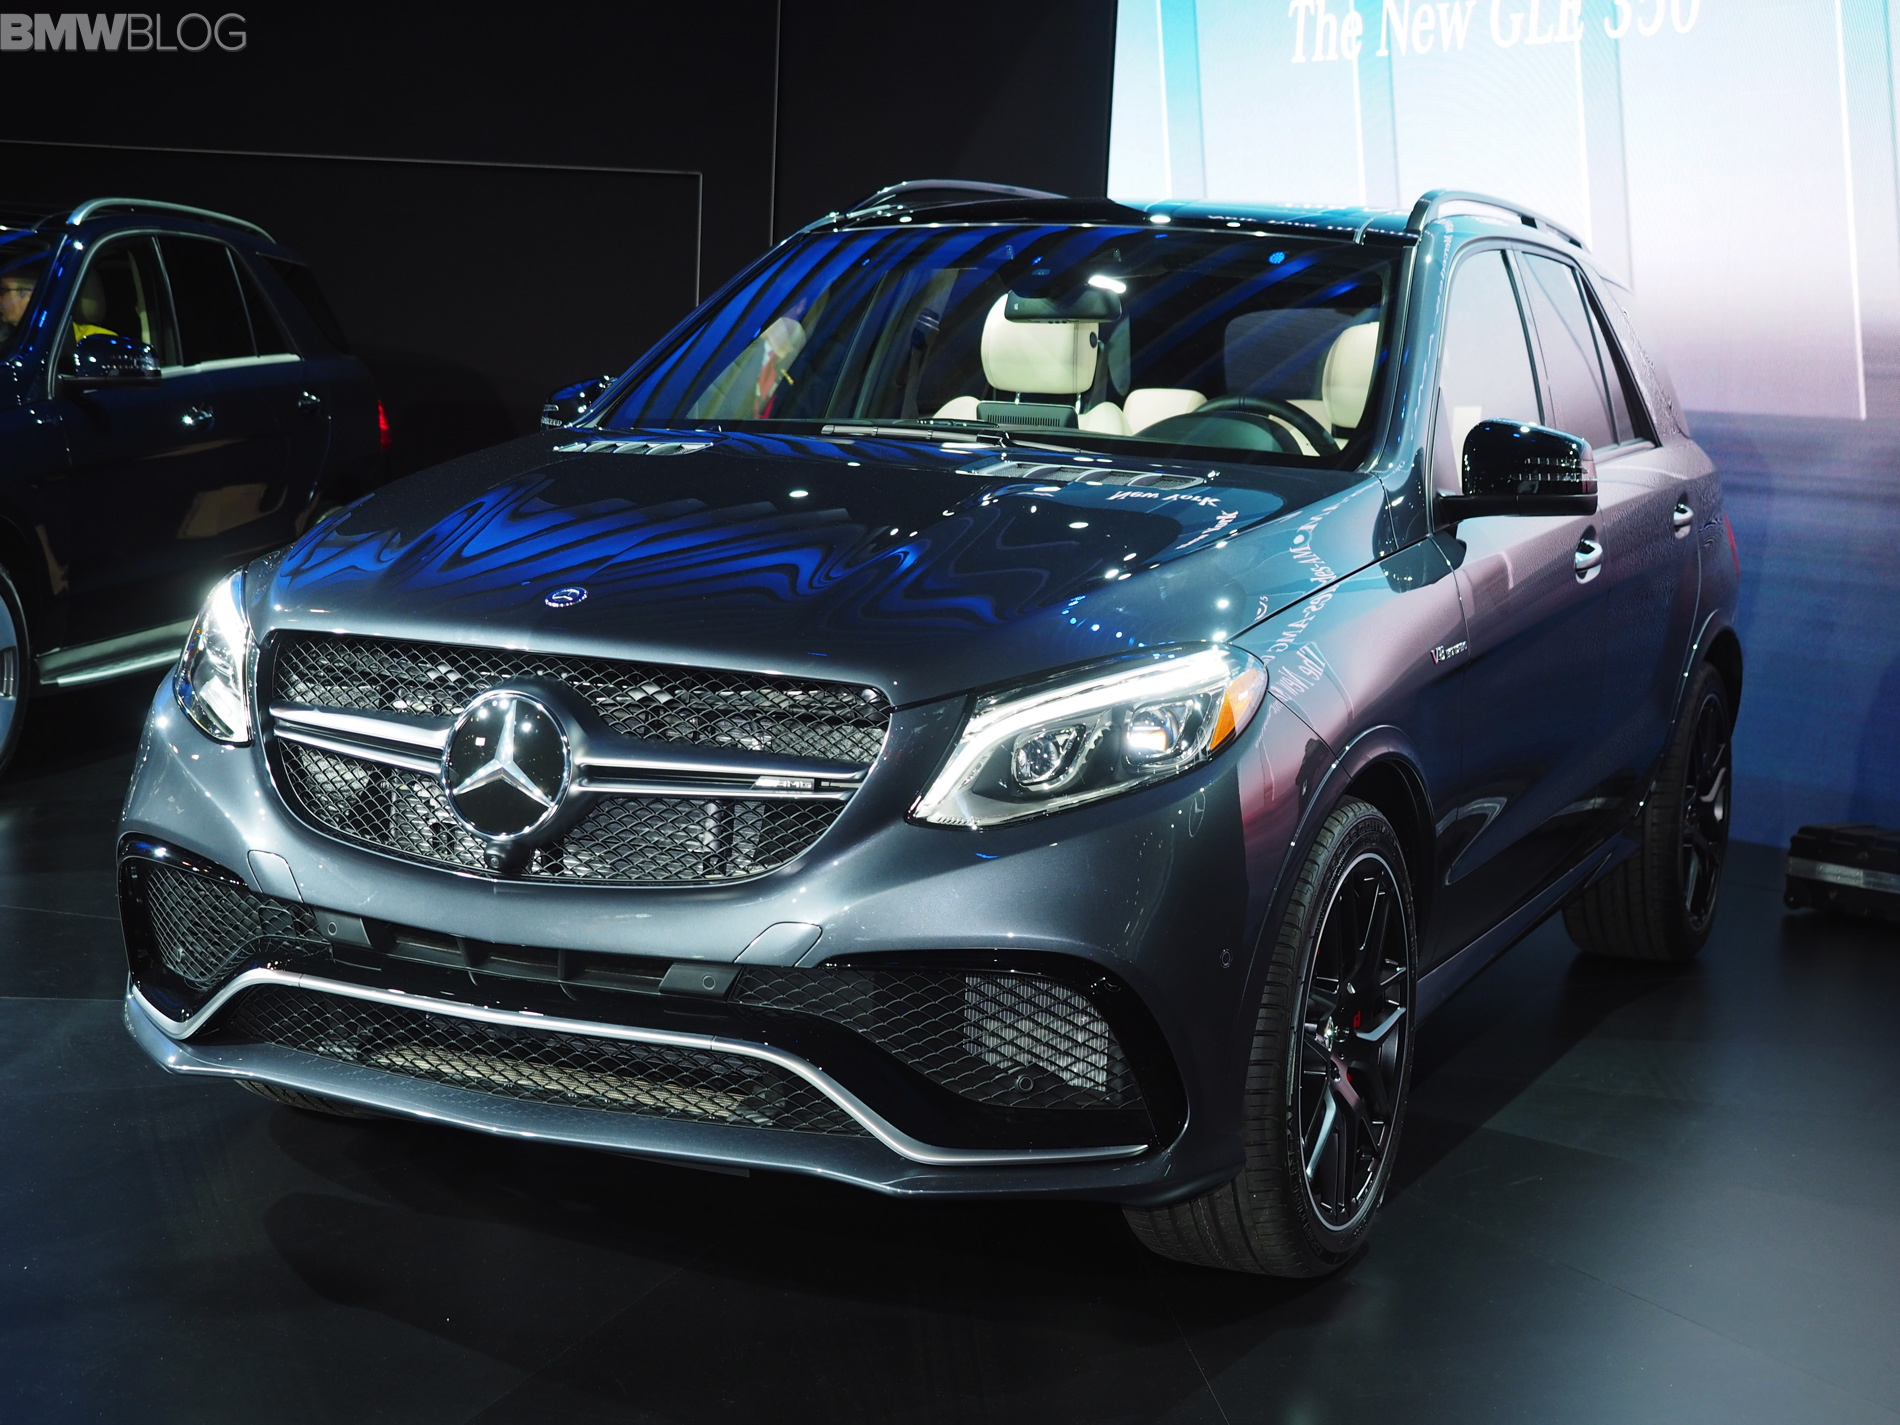 2015 nyias mercedes benz gle class world debut. Black Bedroom Furniture Sets. Home Design Ideas